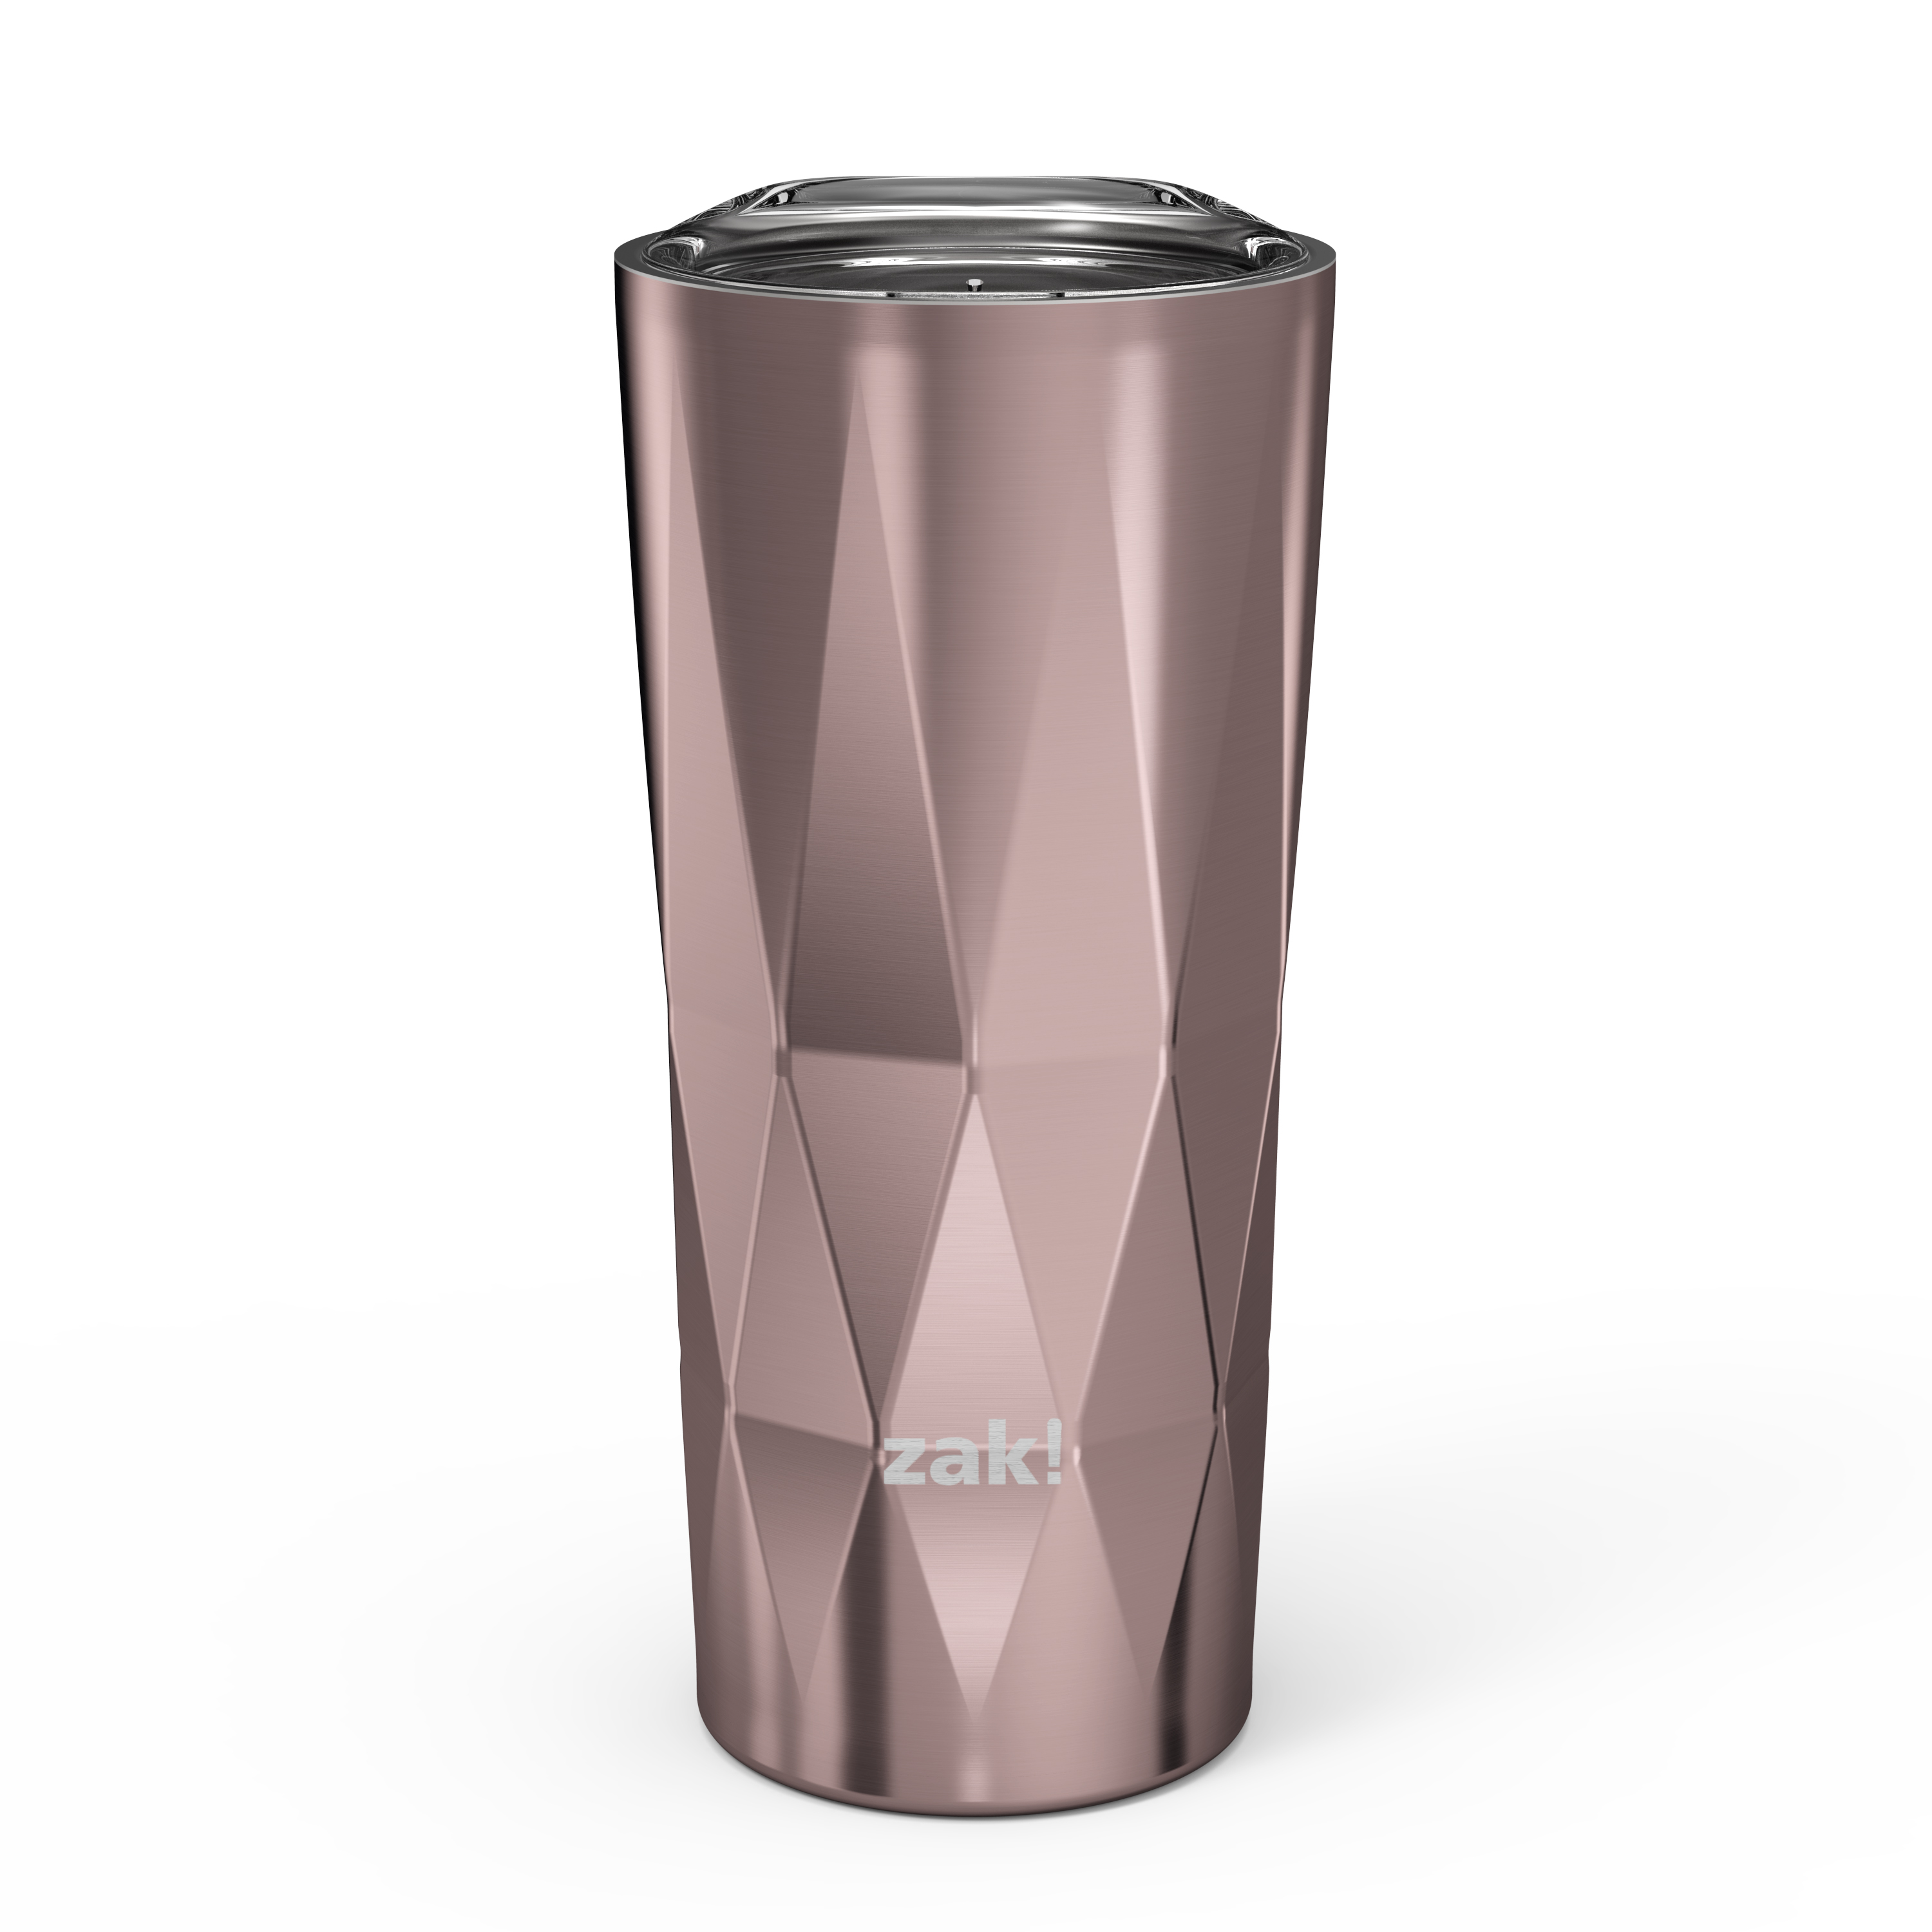 Fractal 16 ounce Vacuum Insulated Stainless Steel Tumbler, Rose Gold slideshow image 2